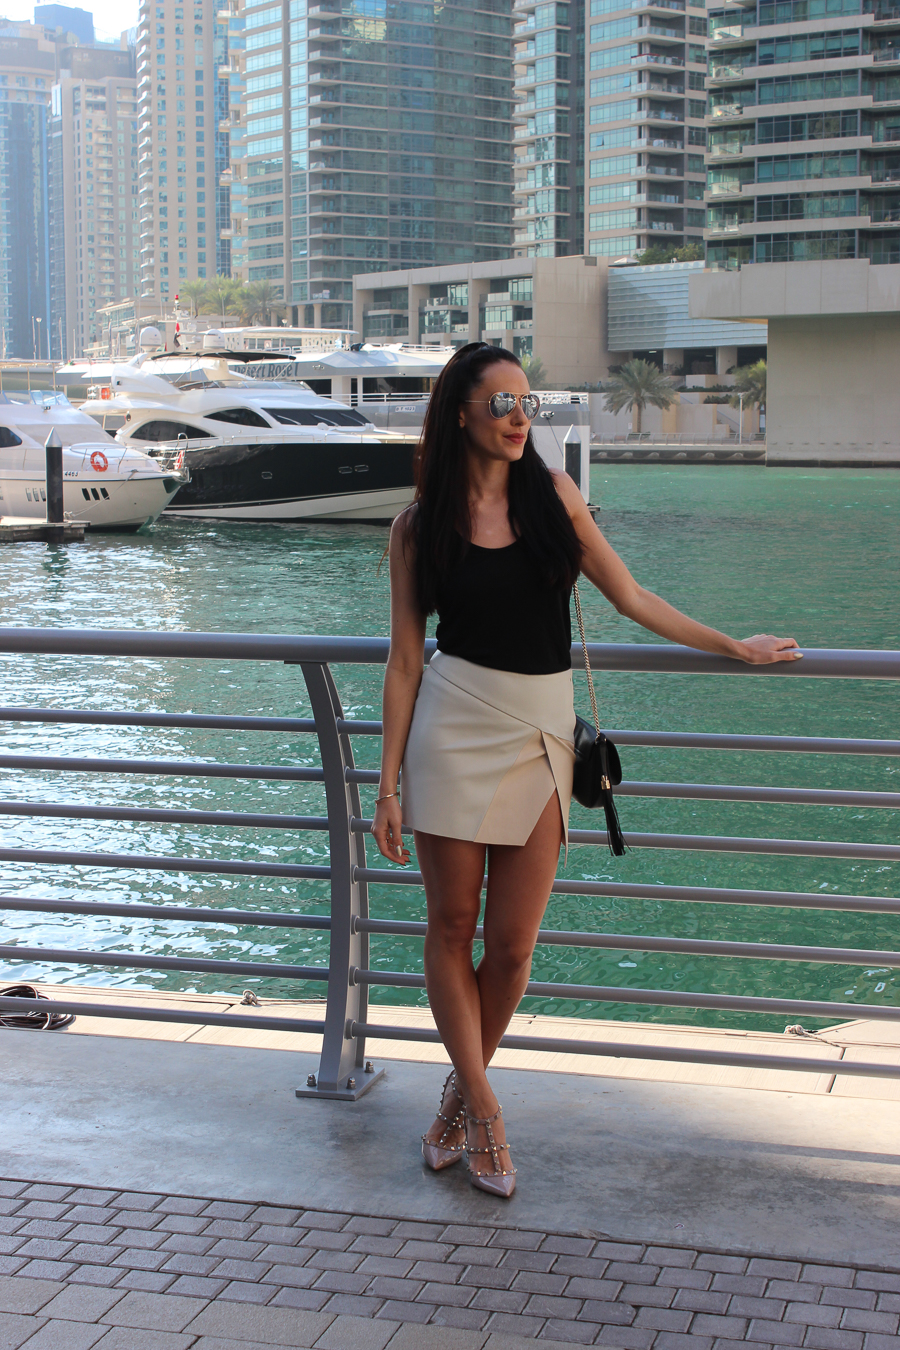 clutch and carry on - uk travel blogger - dubai travel blog - sabrina chakici -_-98